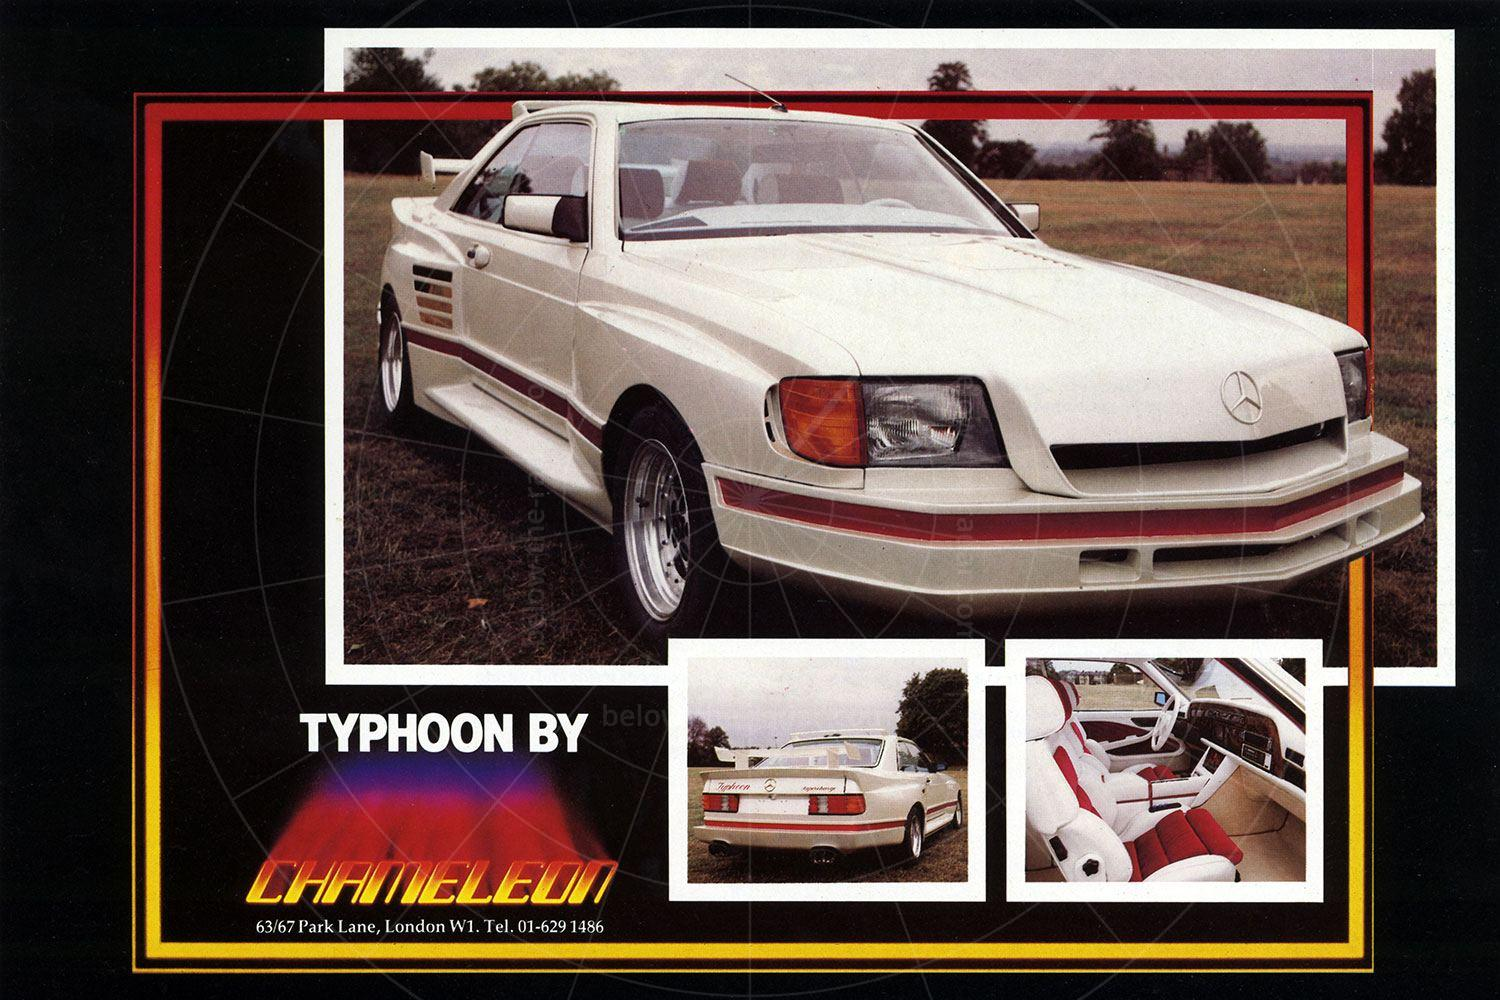 Mercedes Chameleon Typhoon brochure